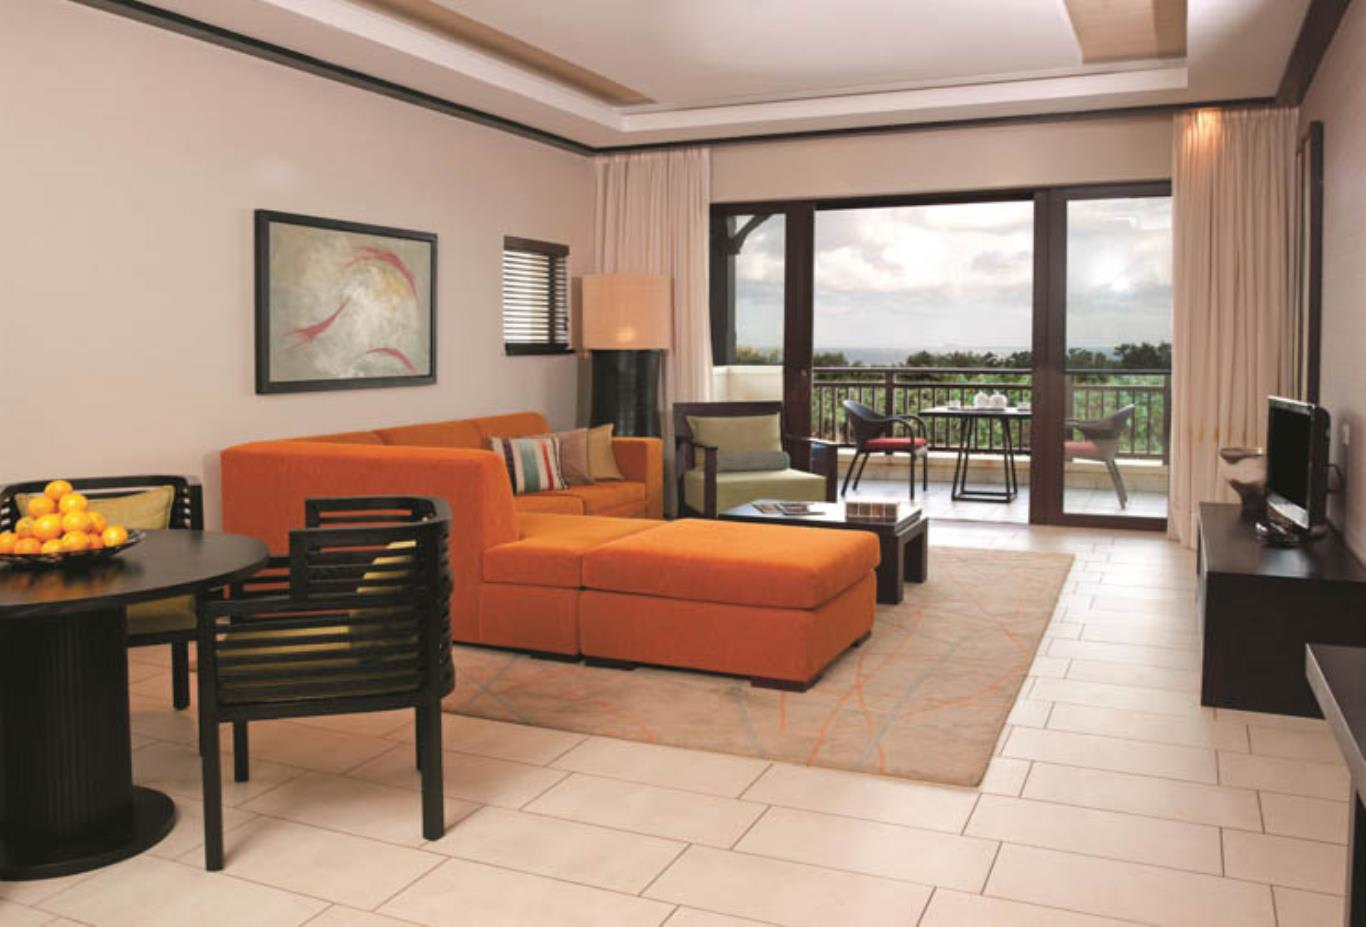 Deluxe Garden Suite lounge area